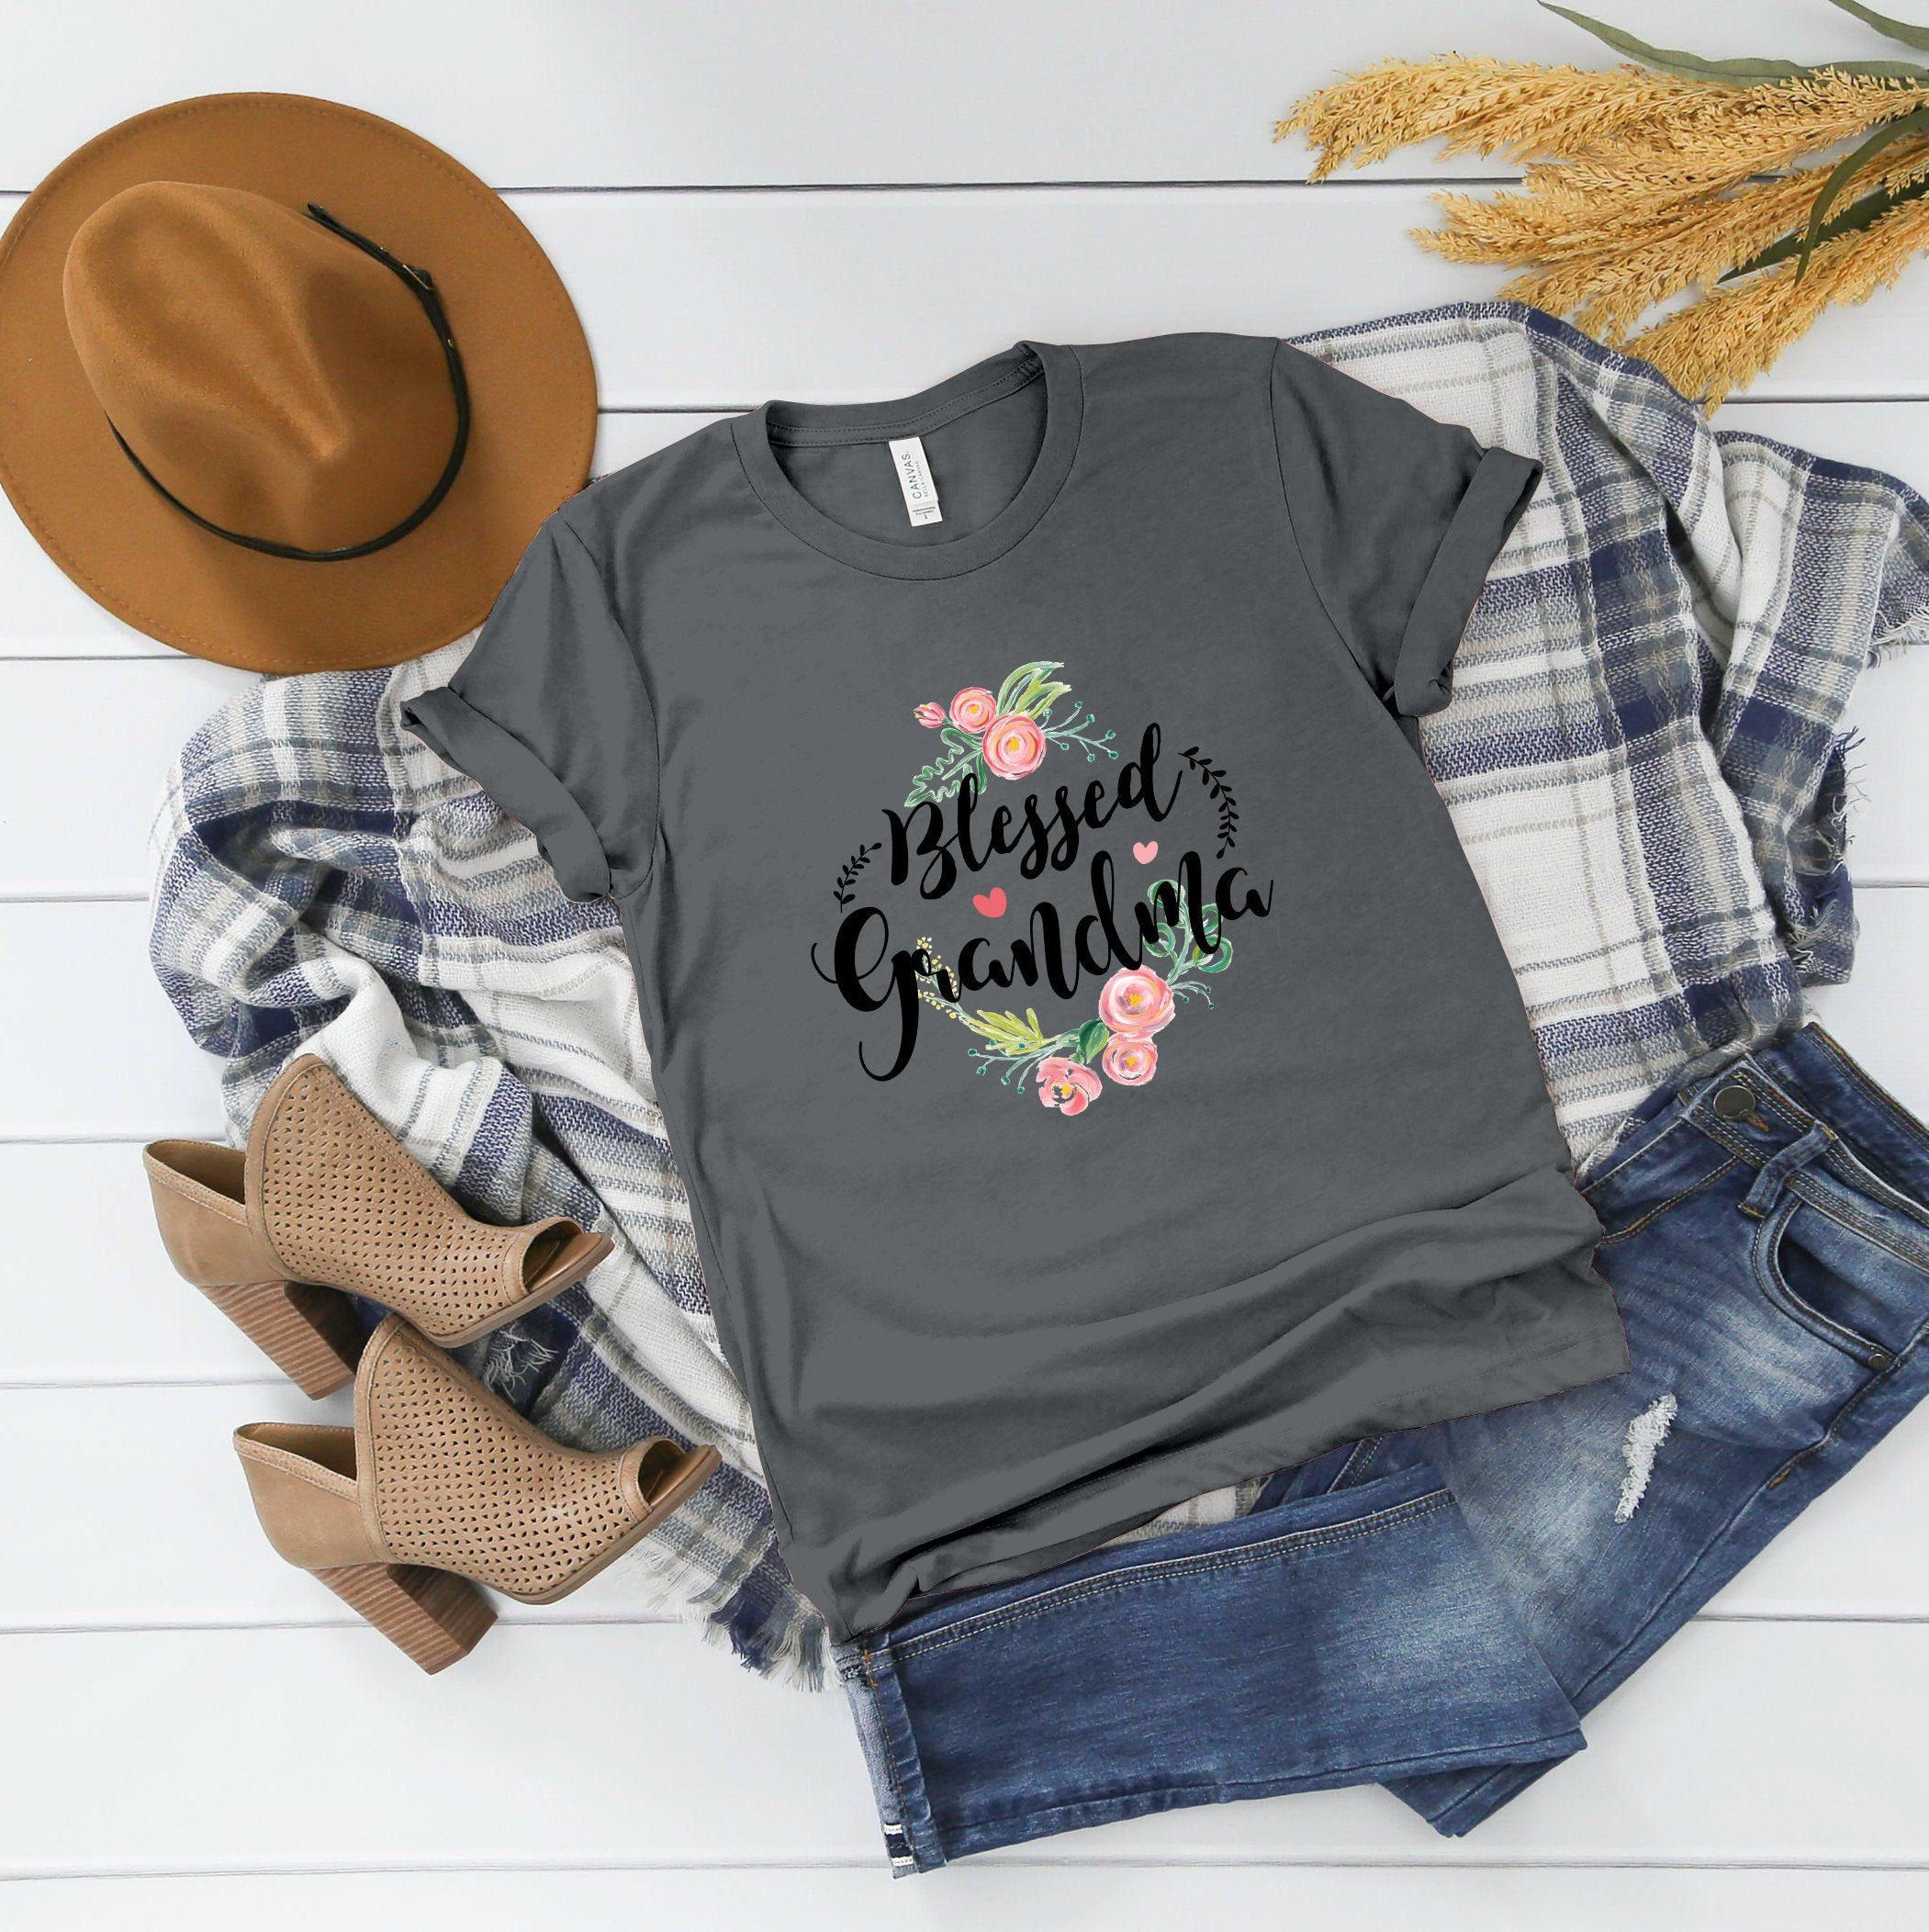 Blessed Grandma tshirt, Grandparents shirt, shirt for Grandparents, Mothers Day Gifts, Gift Shirt for Grandma, Grandparents Day T-shirt, T-S #grandparentsdaygifts